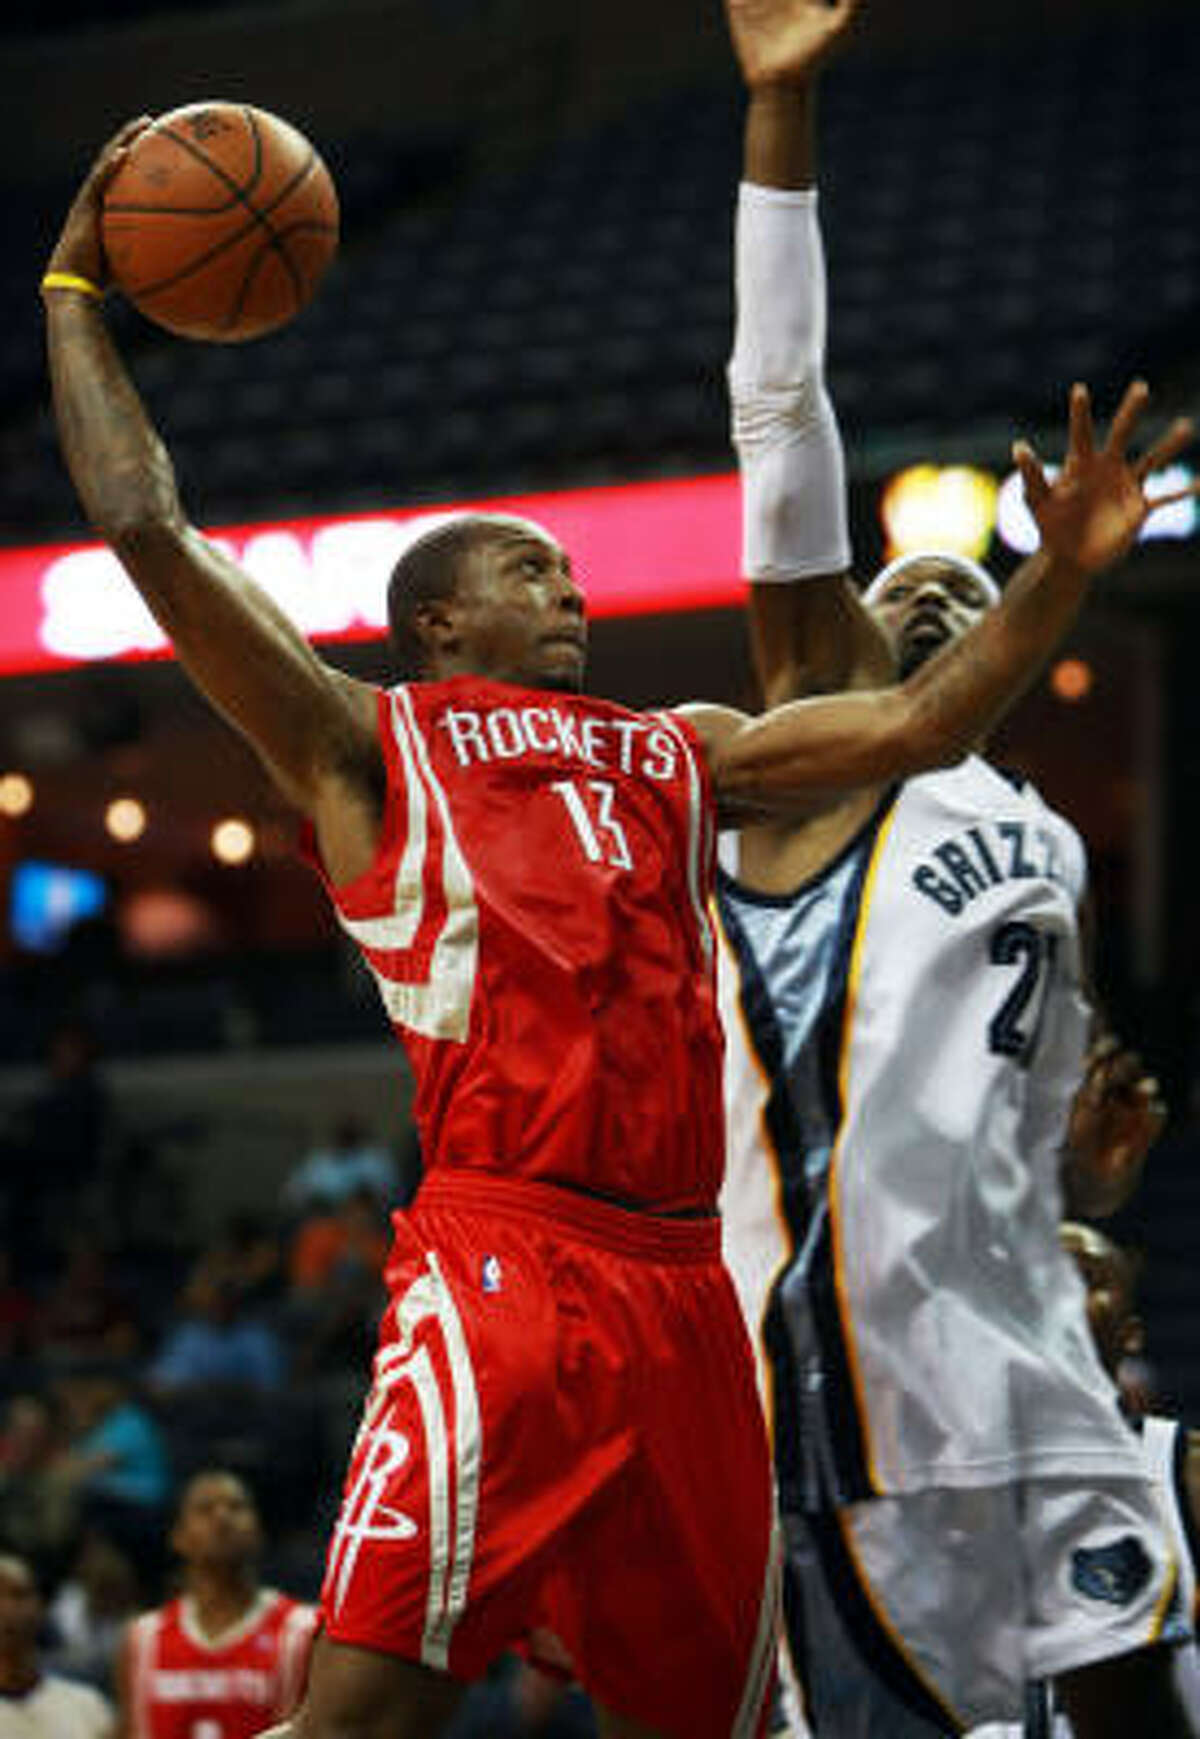 Rockets guard Von Wafer, left, looks to dunk over Memphis Grizzlies forward Hakim Warrick in the second half on Wednesday in Memphis, Tenn.